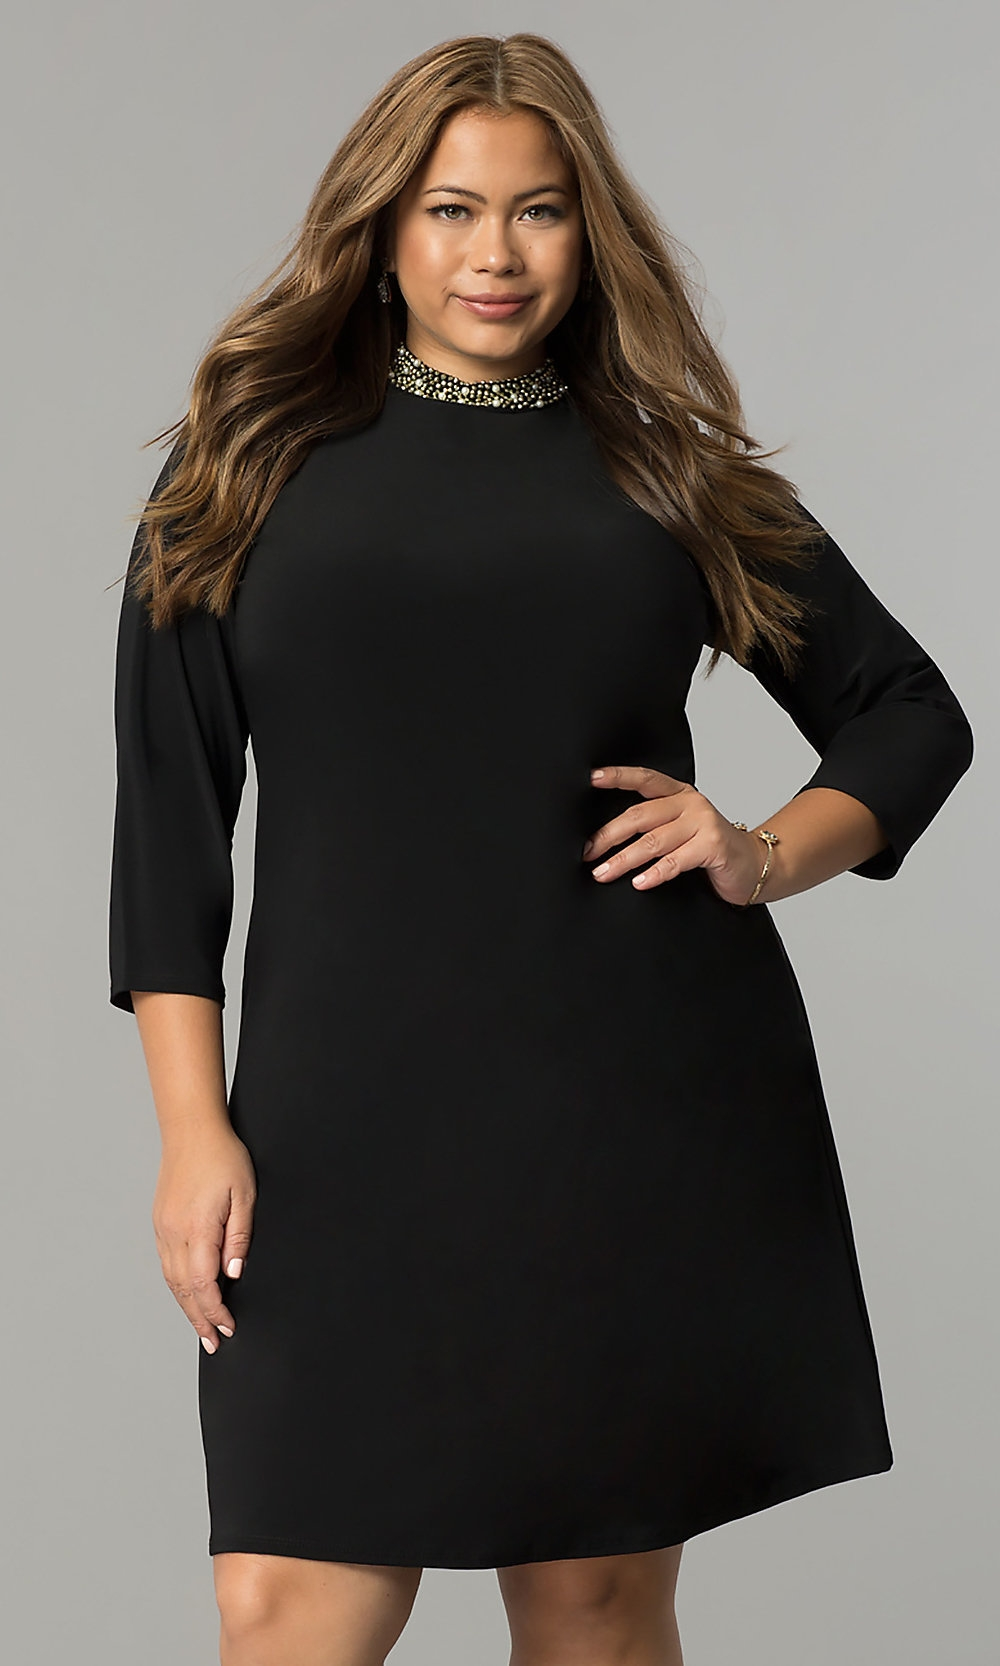 short plus size black holiday party dress promgirl